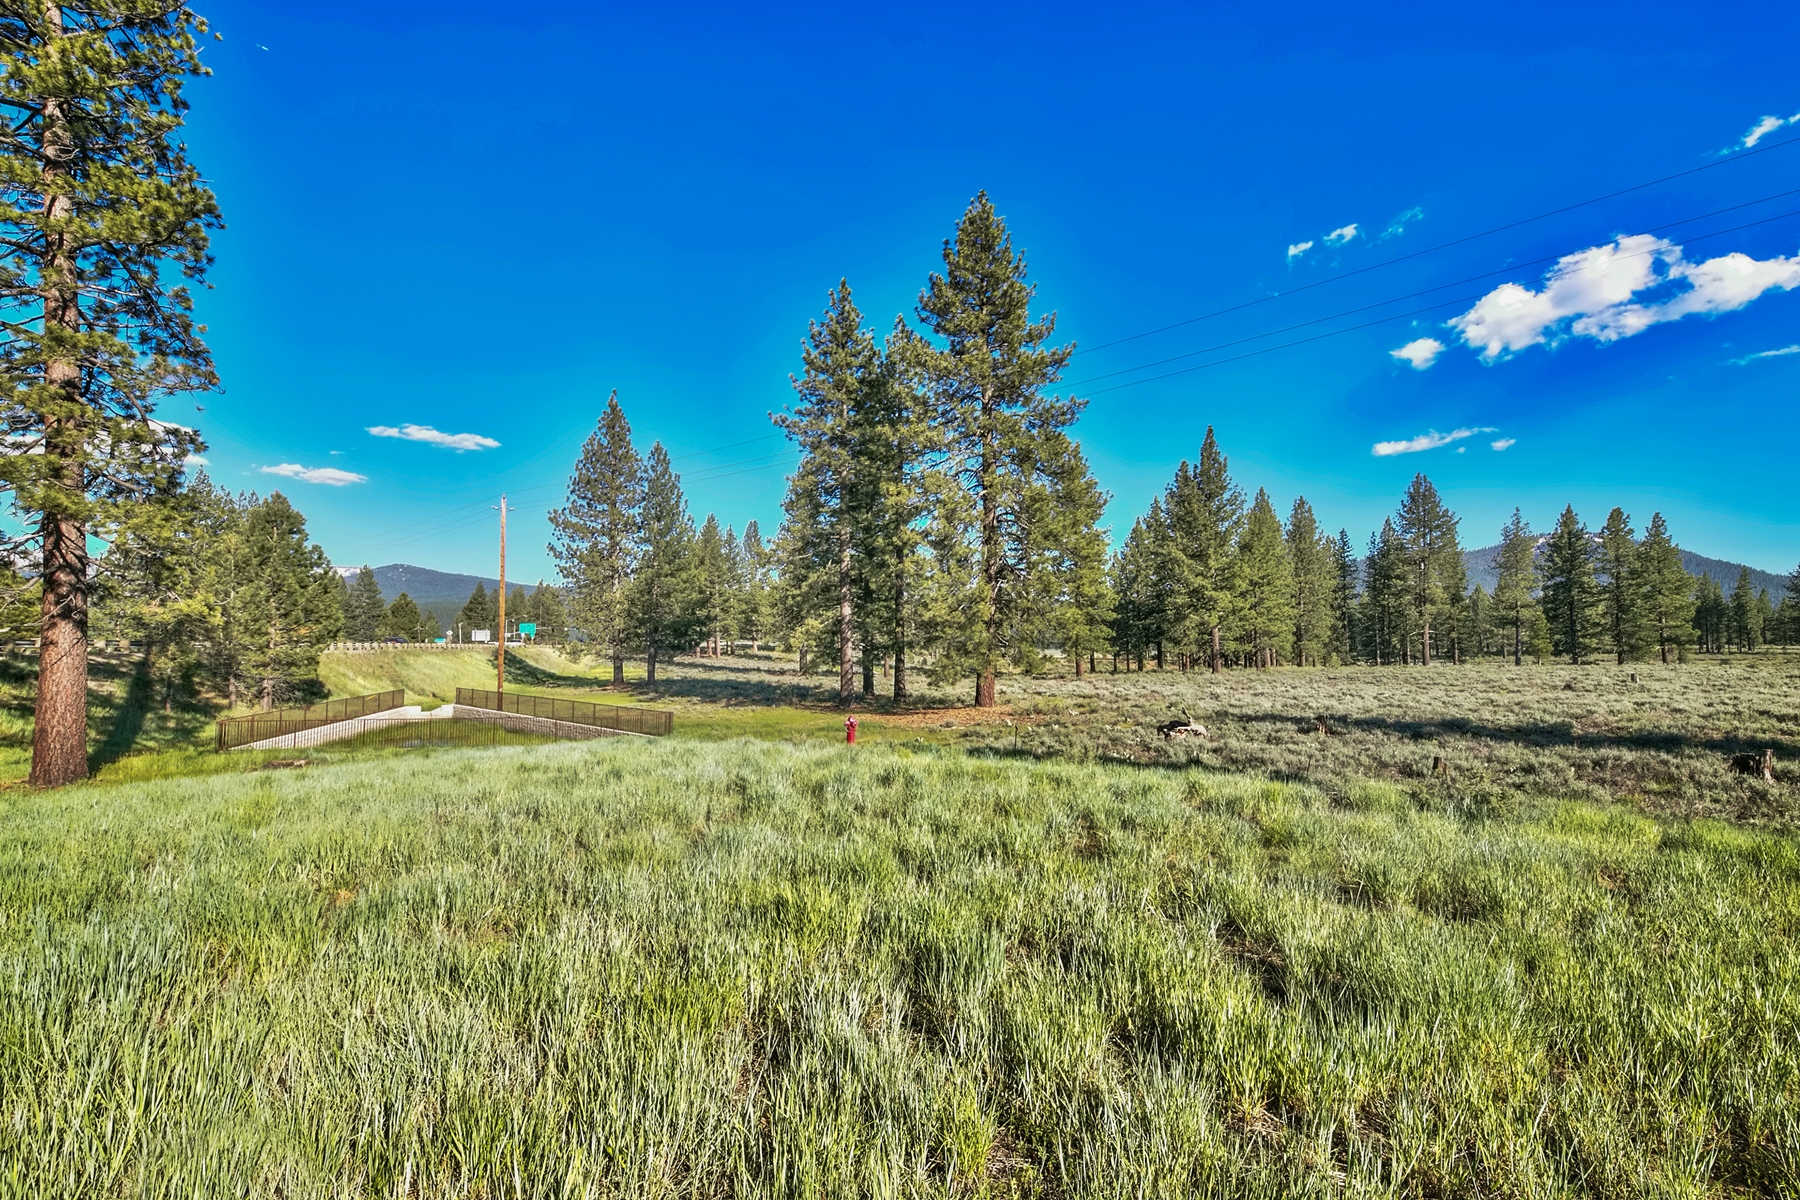 Additional photo for property listing at 9701 North Shore Boulevard, Truckee, CA 9701 North Shore Blvd. 9701 Highway 267 Truckee, California 96161 United States